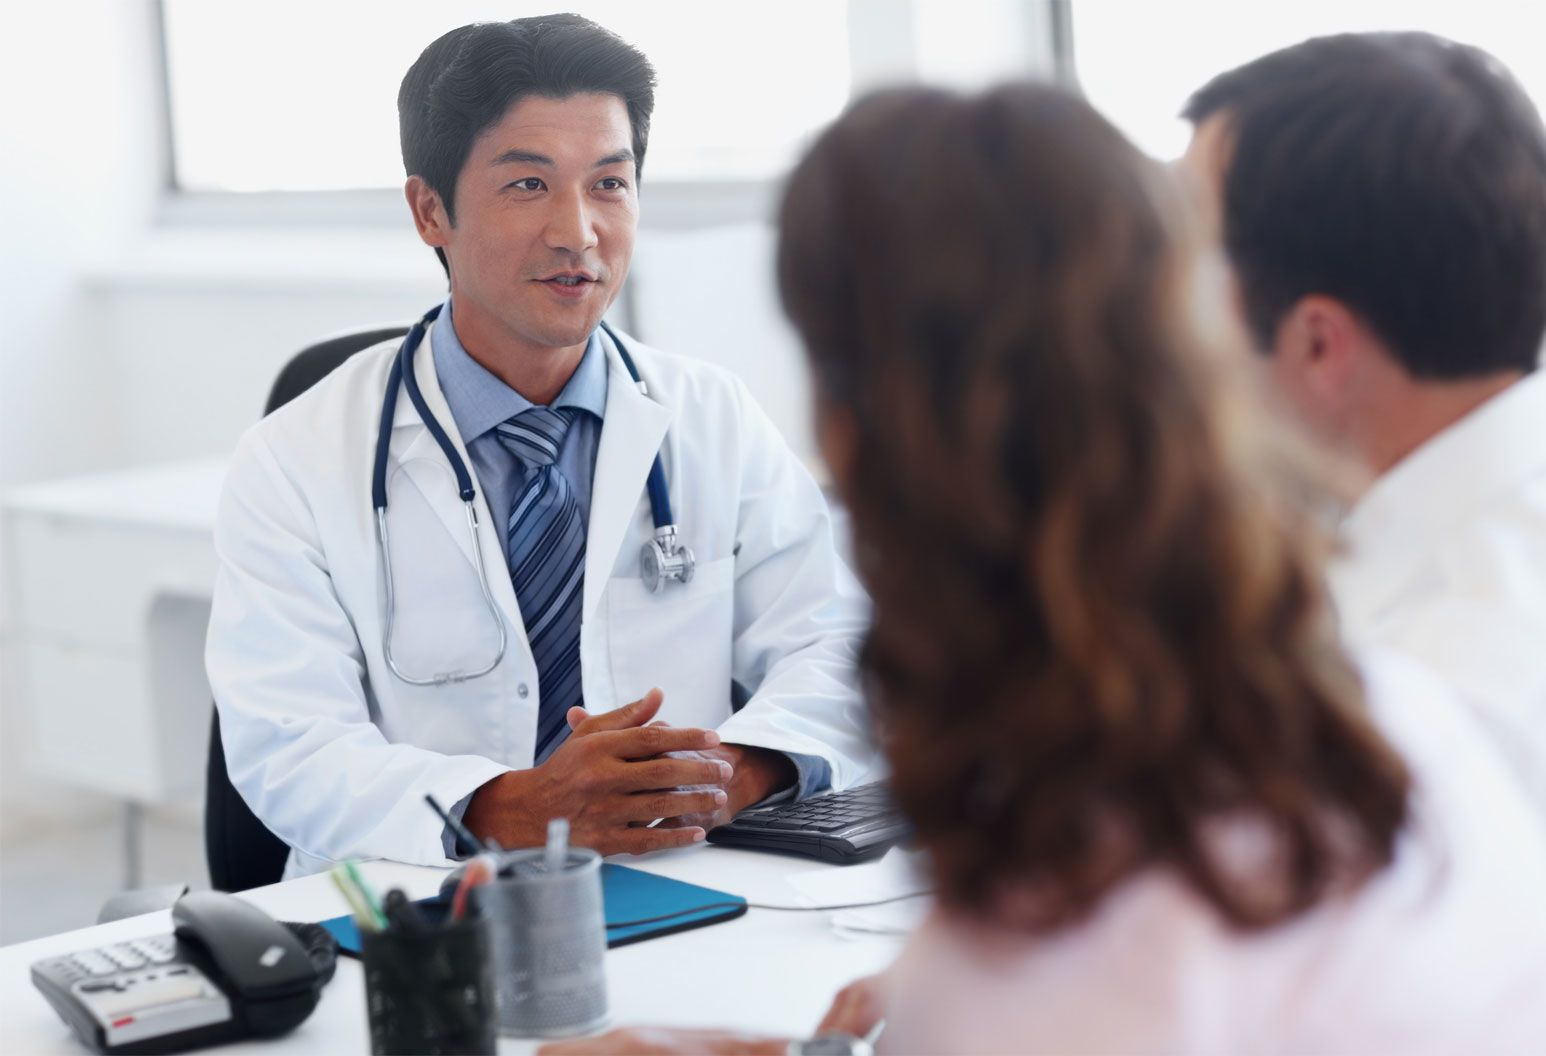 Male doctor sitting at desk wearing a white lab coat, speaking to male and female couple.